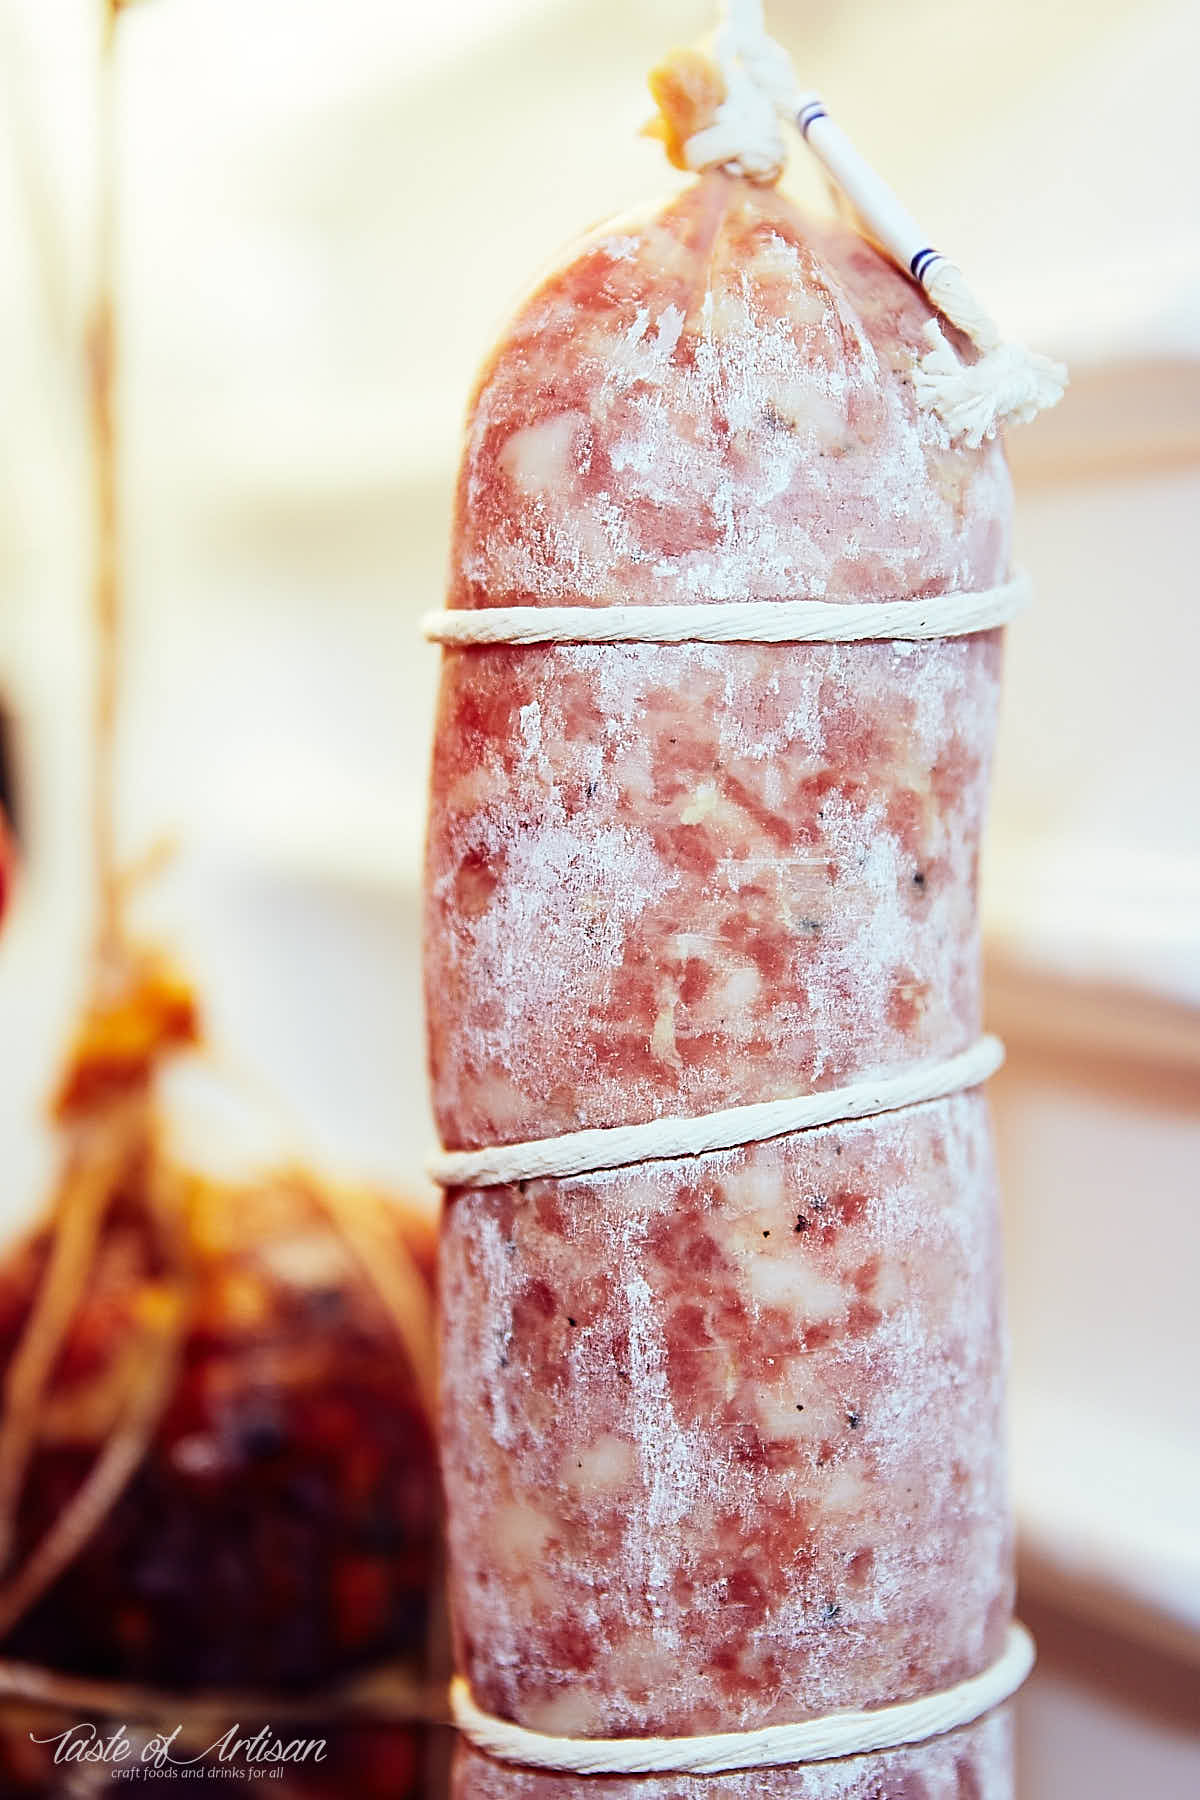 Sopressata (soppressata), covered in white mold, inside a curing chamber..